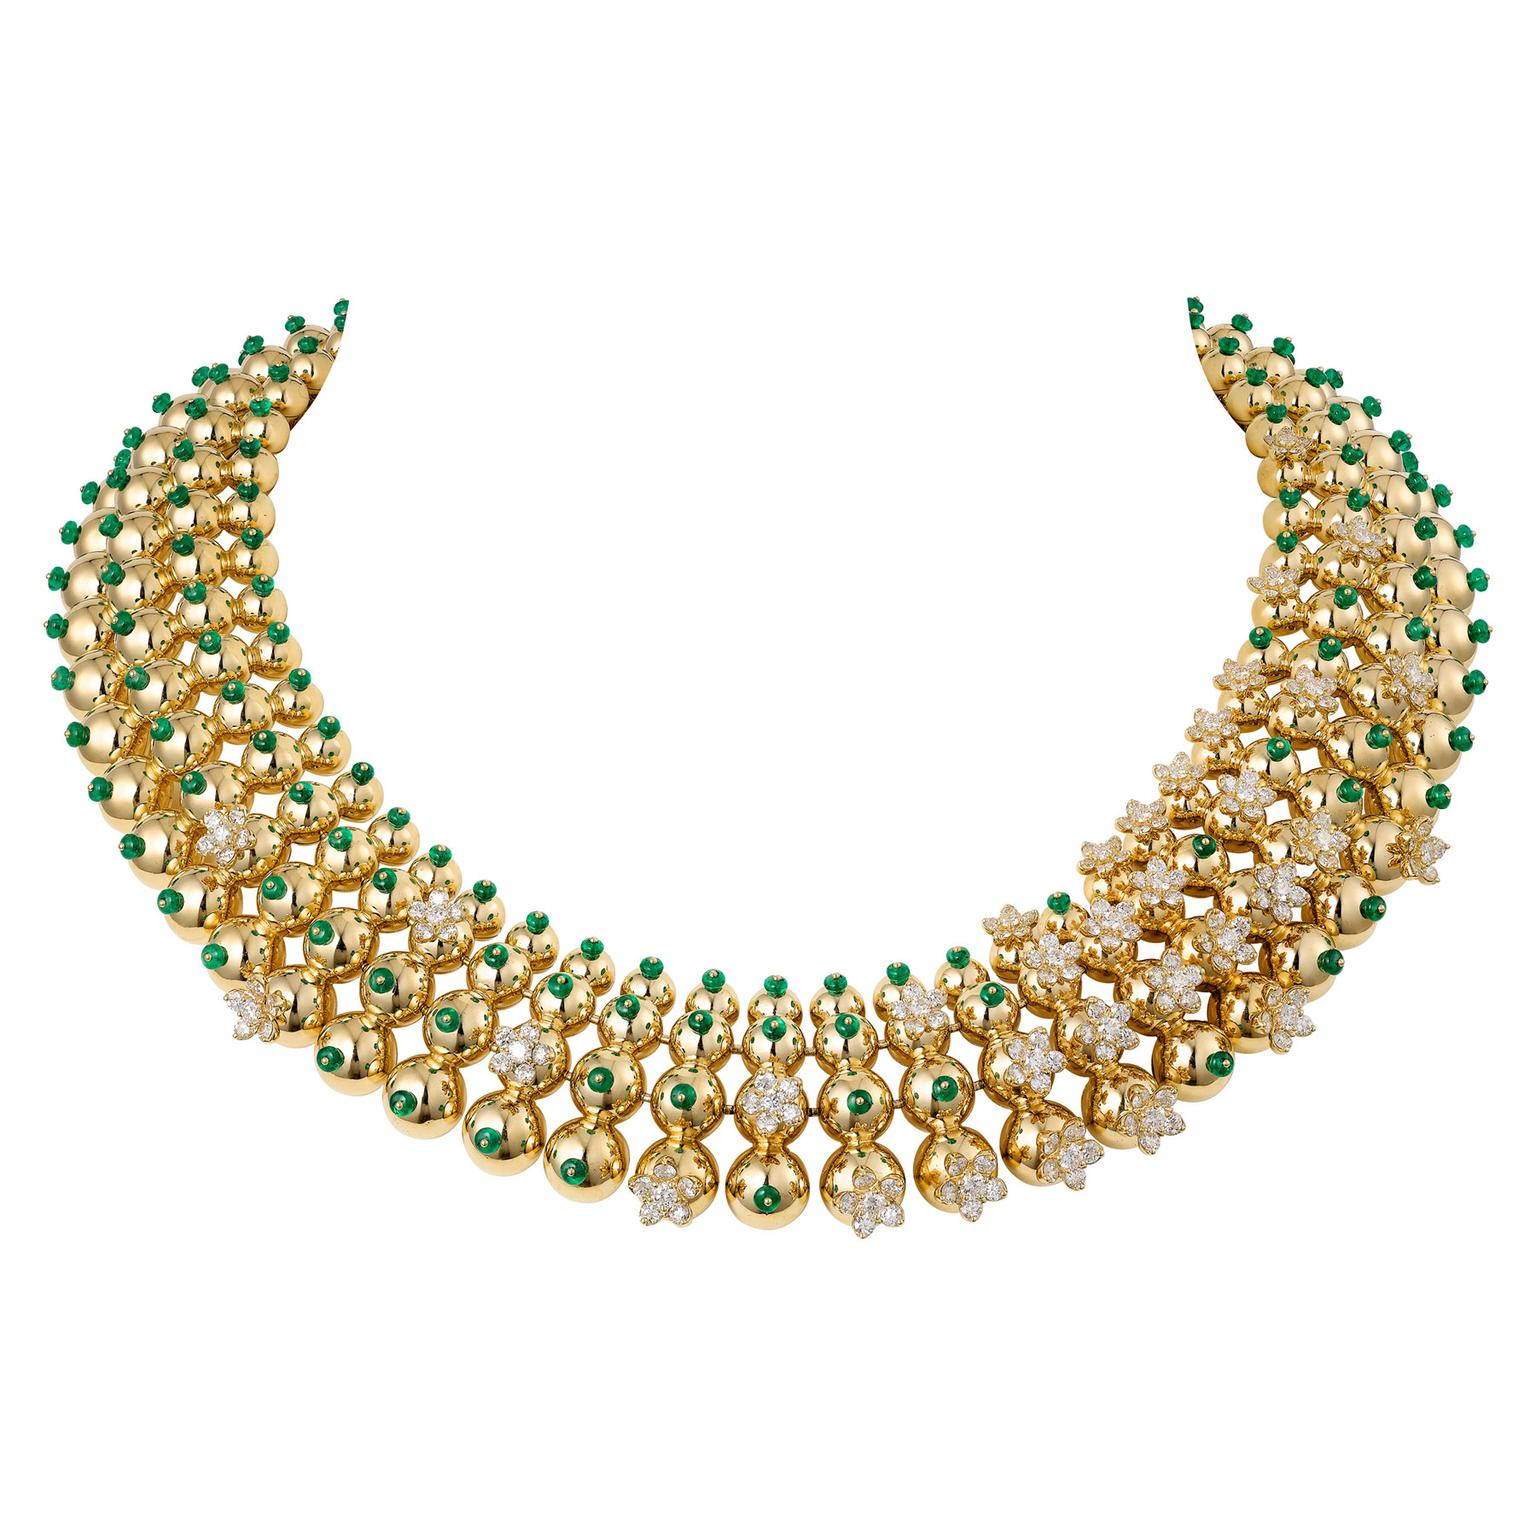 Cactus de Cartier necklace in yellow gold with emerald beads and diamond flowers